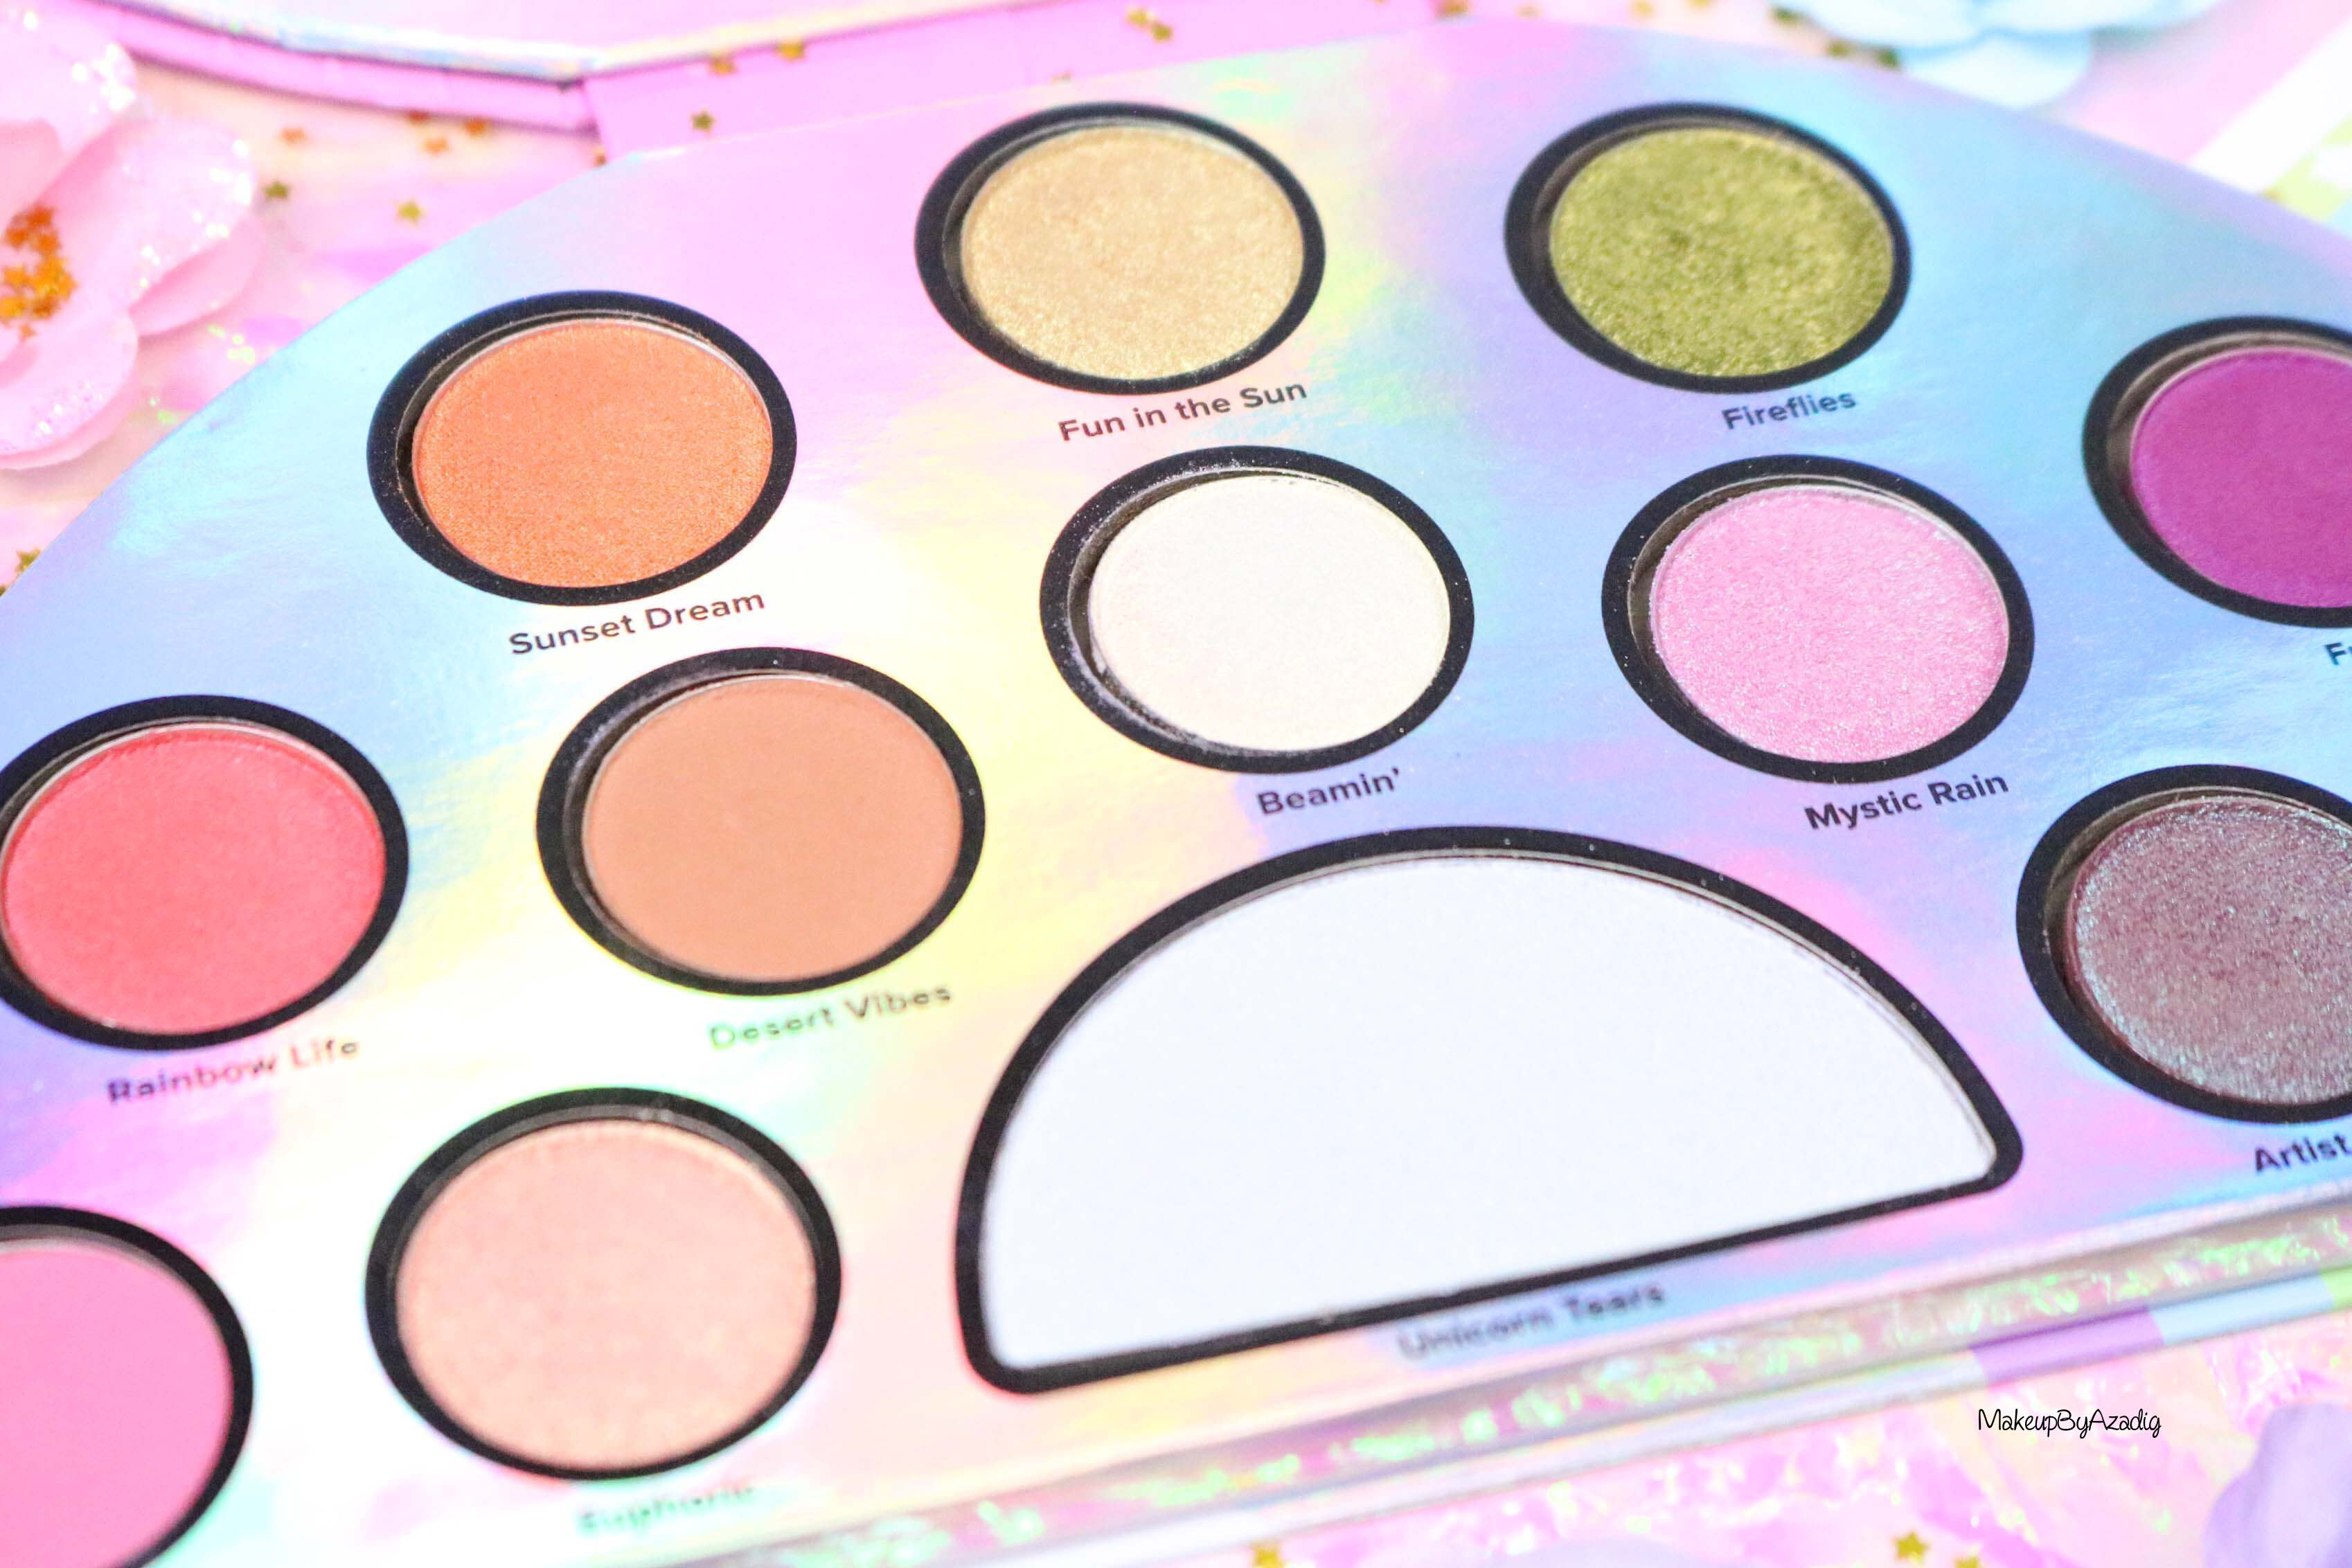 revue-palette-lifes-a-festival-too-faced-france-sephora-avis-prix-revue-makeupbyazadig-collection-licorne-zoom